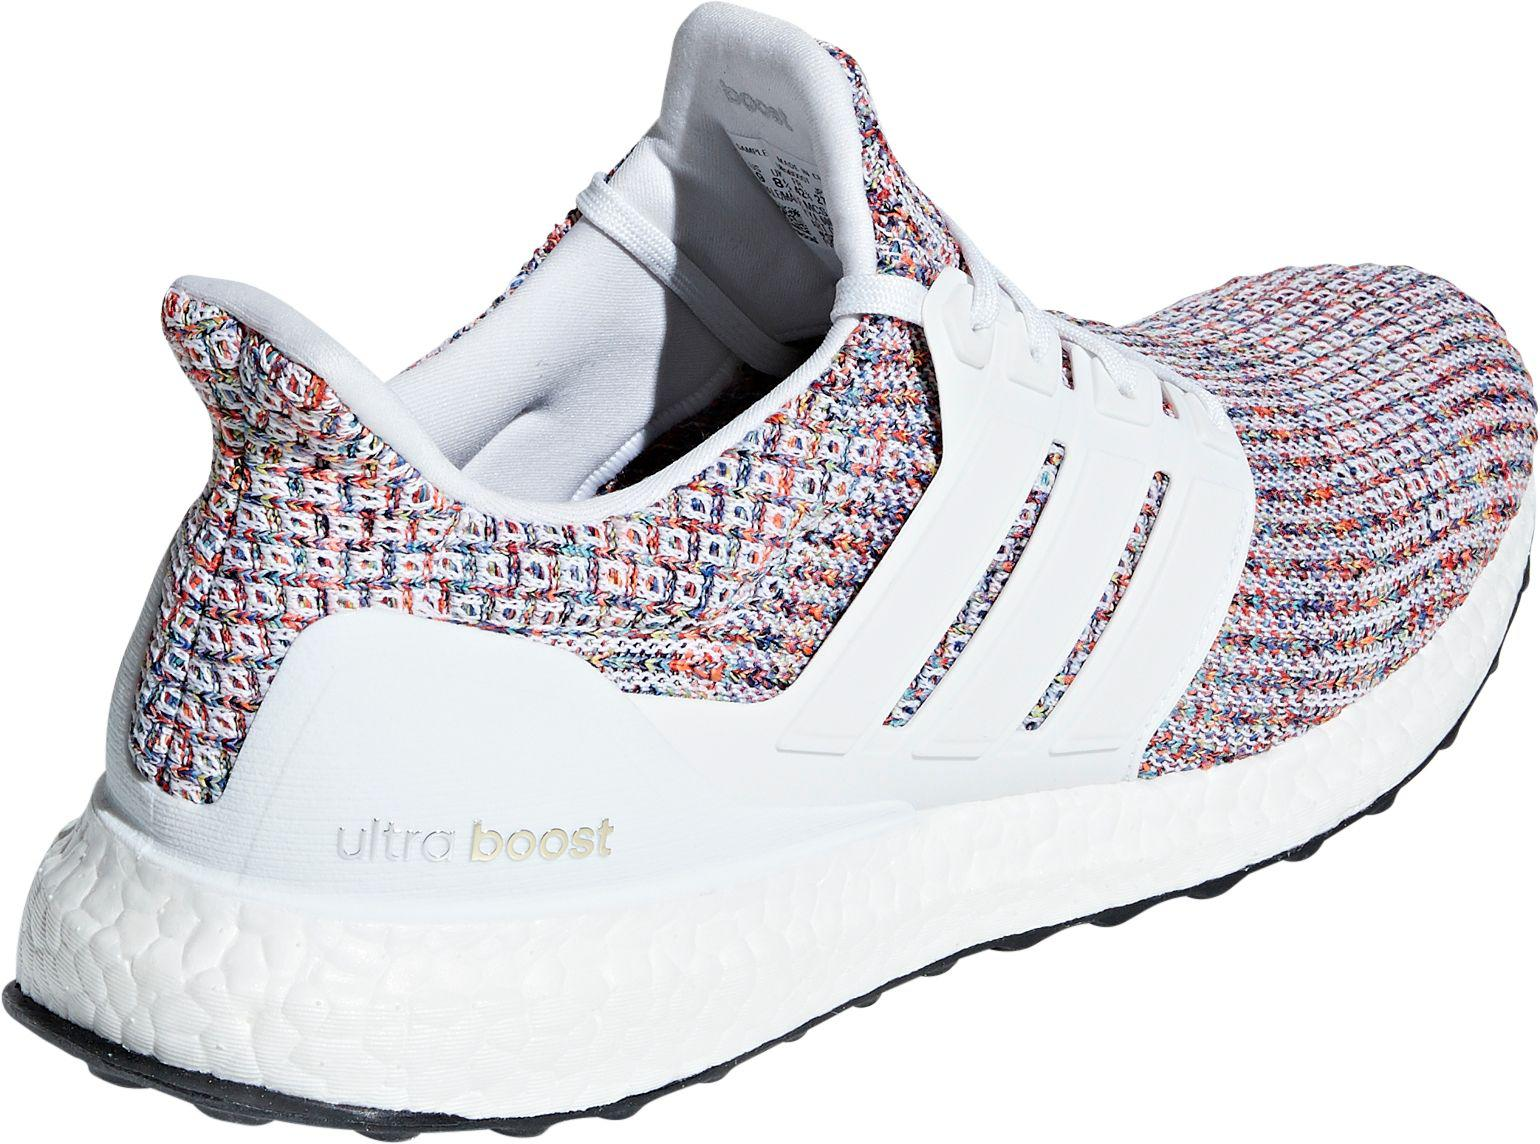 695cc89264d Adidas - Multicolor Ultra Boost Running Shoes for Men - Lyst